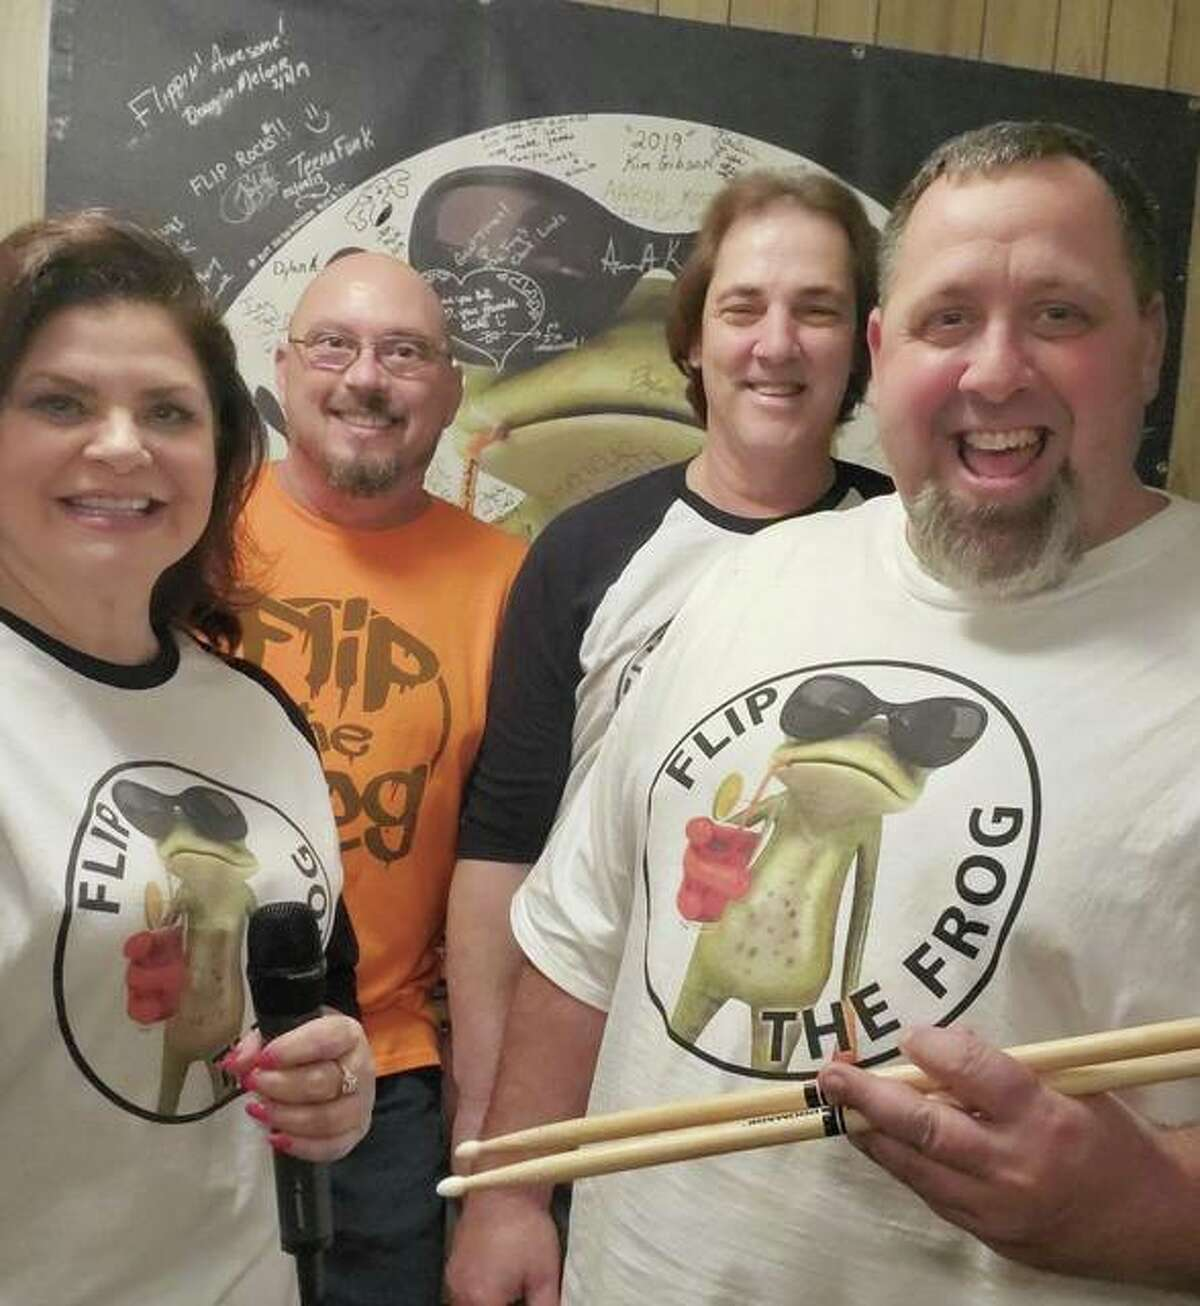 Flip the Frog will perform in Fosterburg Park, 2919 Main St., in Alton on Monday, Aug. 2 from 7-9 p.m.